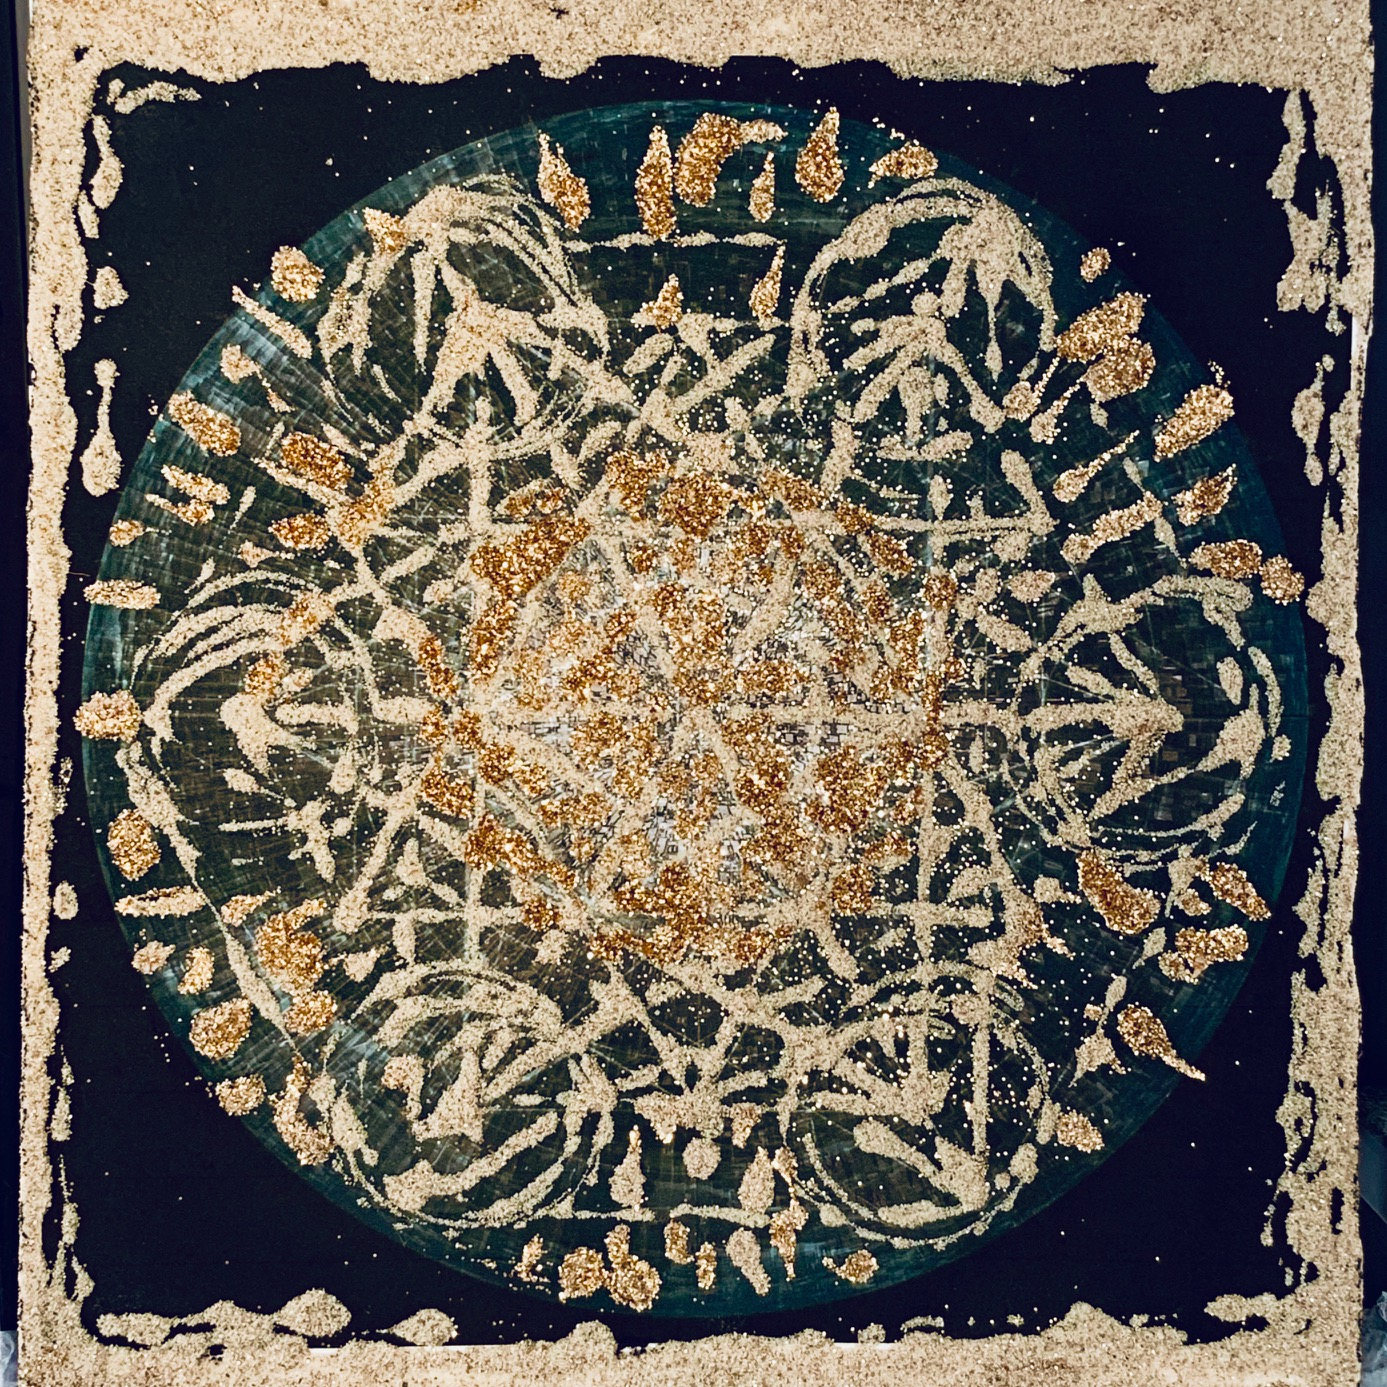 Mattai Metatron, sand and gold on paper, 15 x 11 in $850